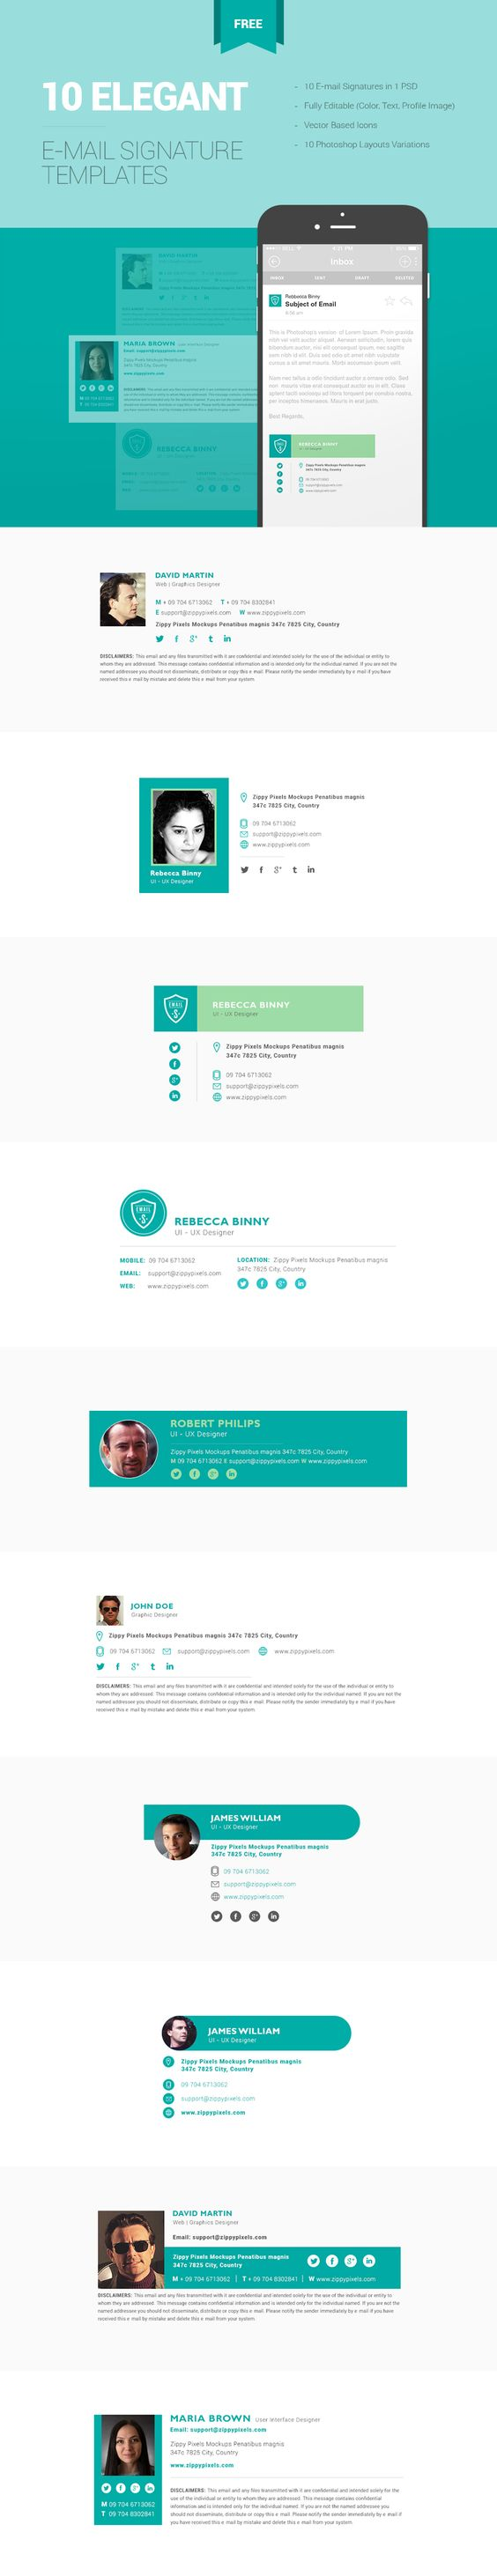 Pin by Stacy Zanca on design | web/interactive | Pinterest | Email ...